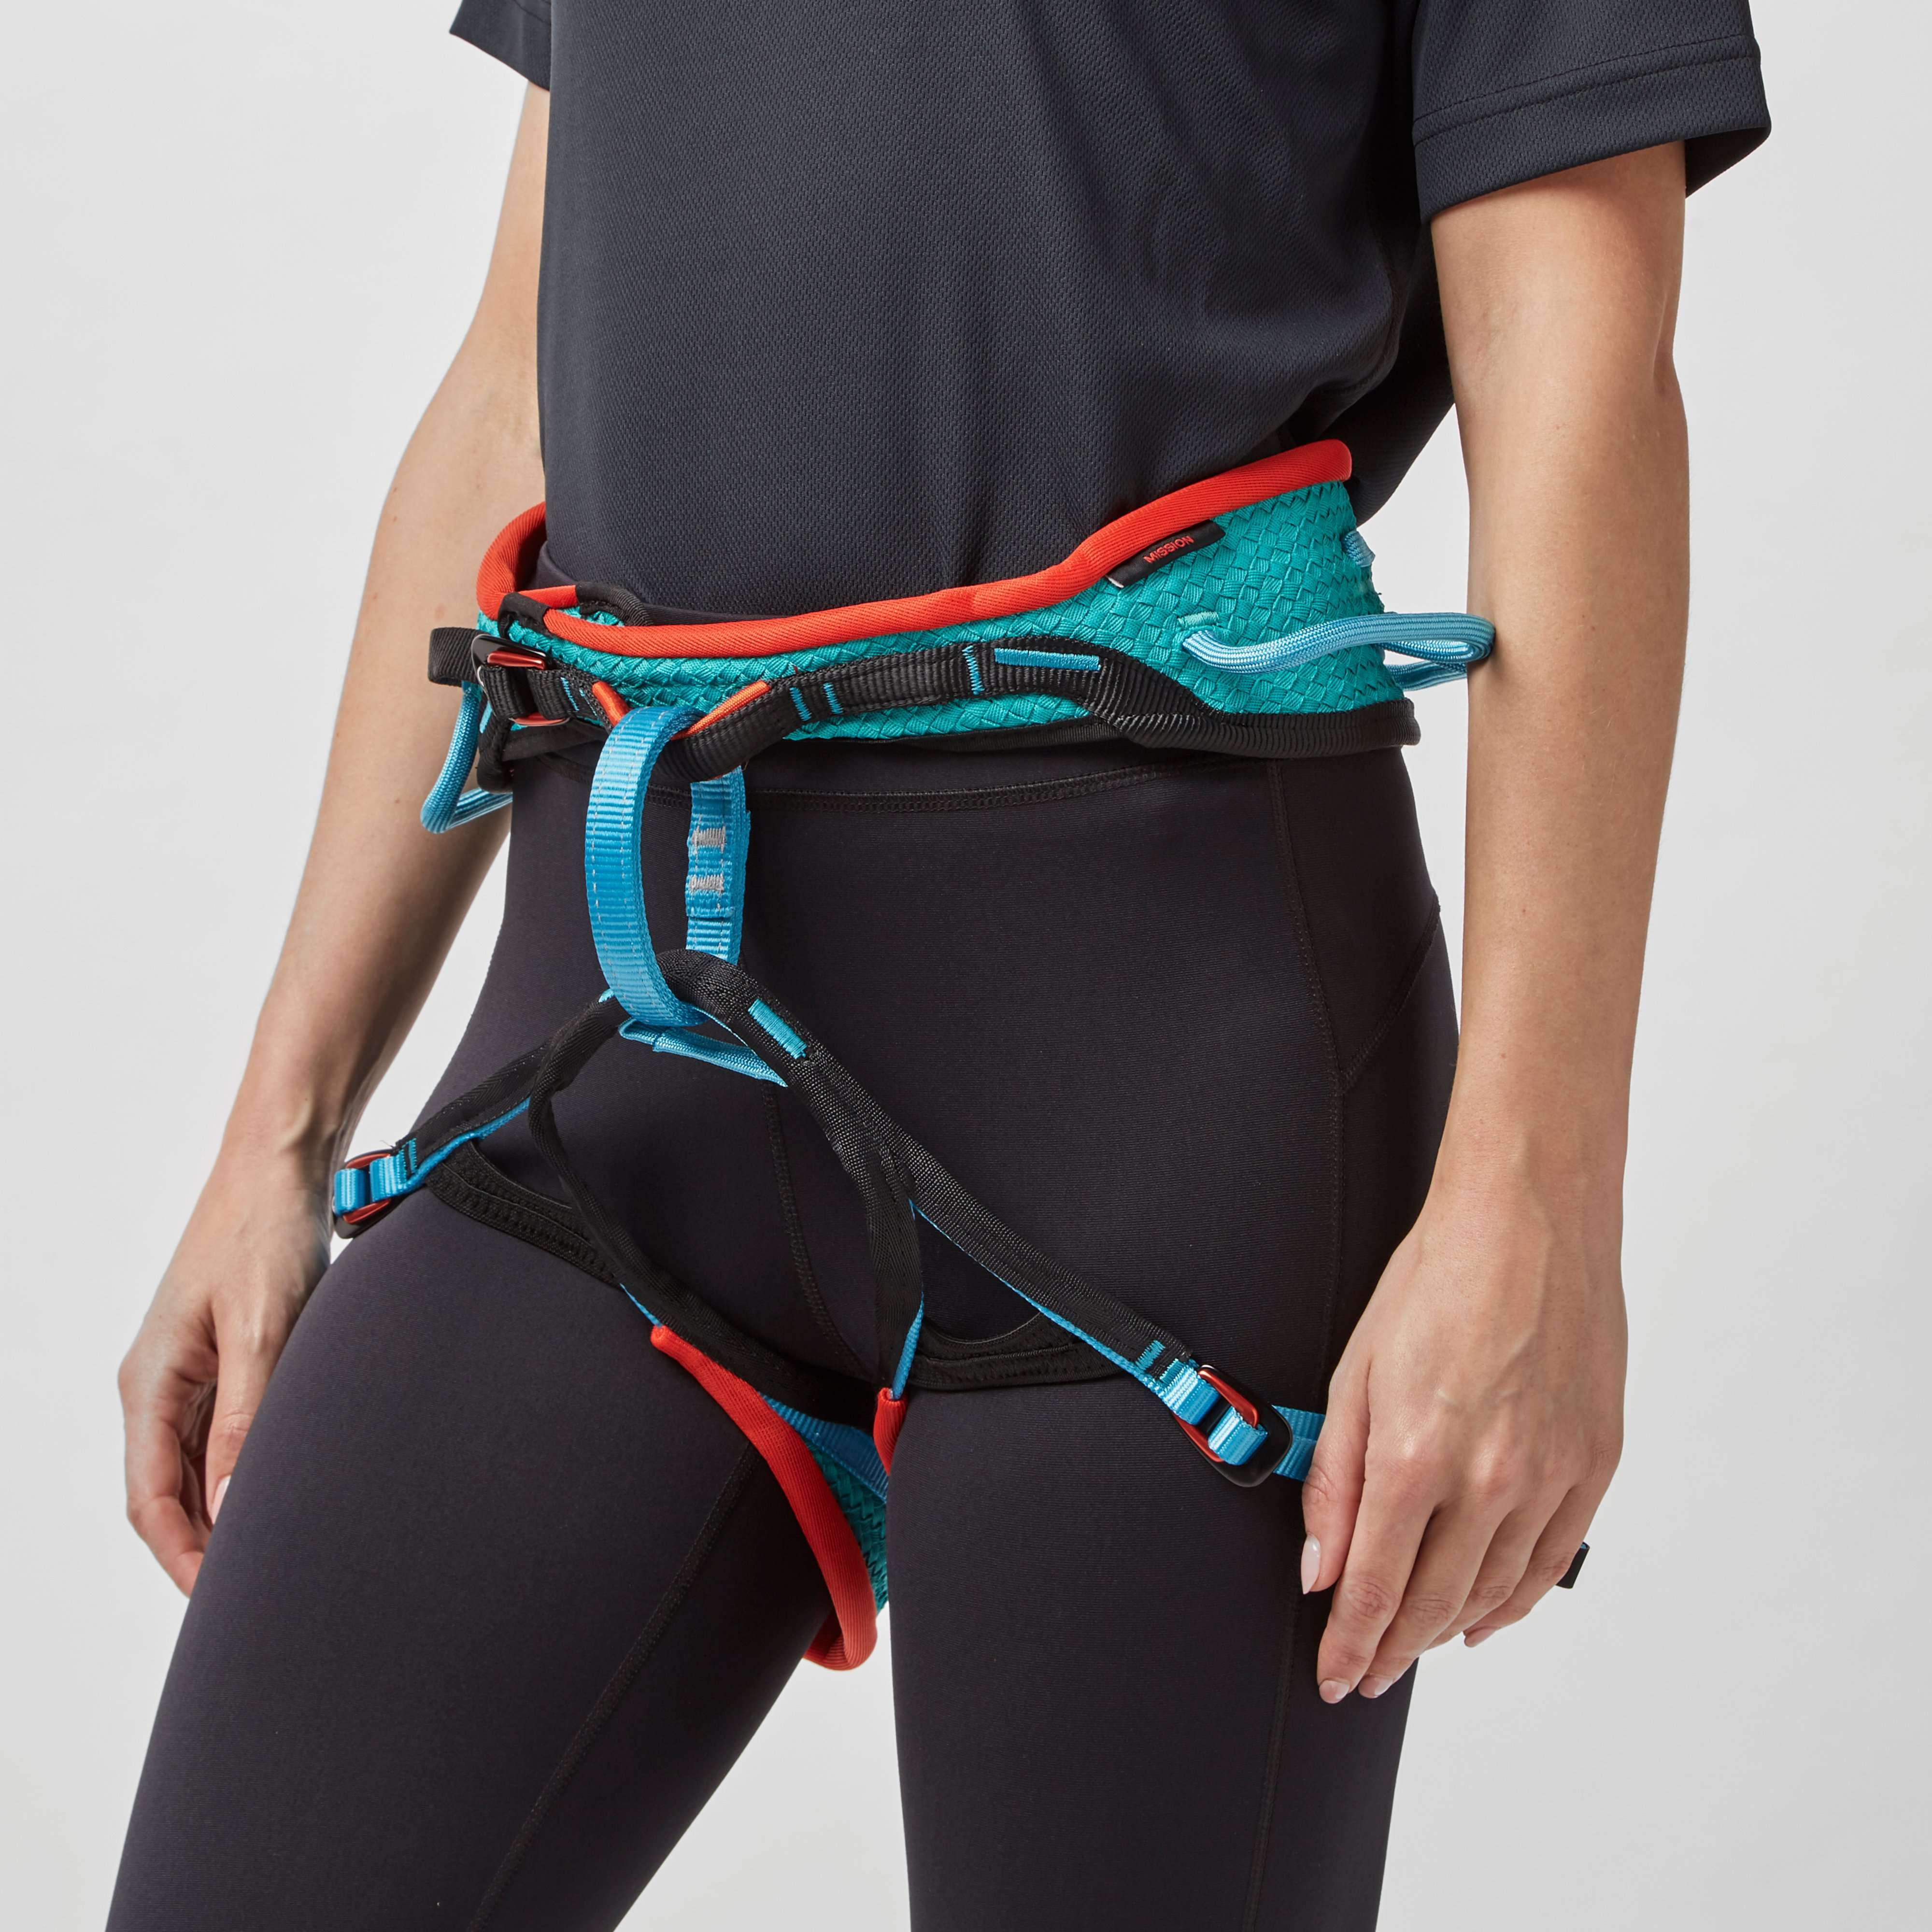 WILD COUNTRY Women's Mission Harness